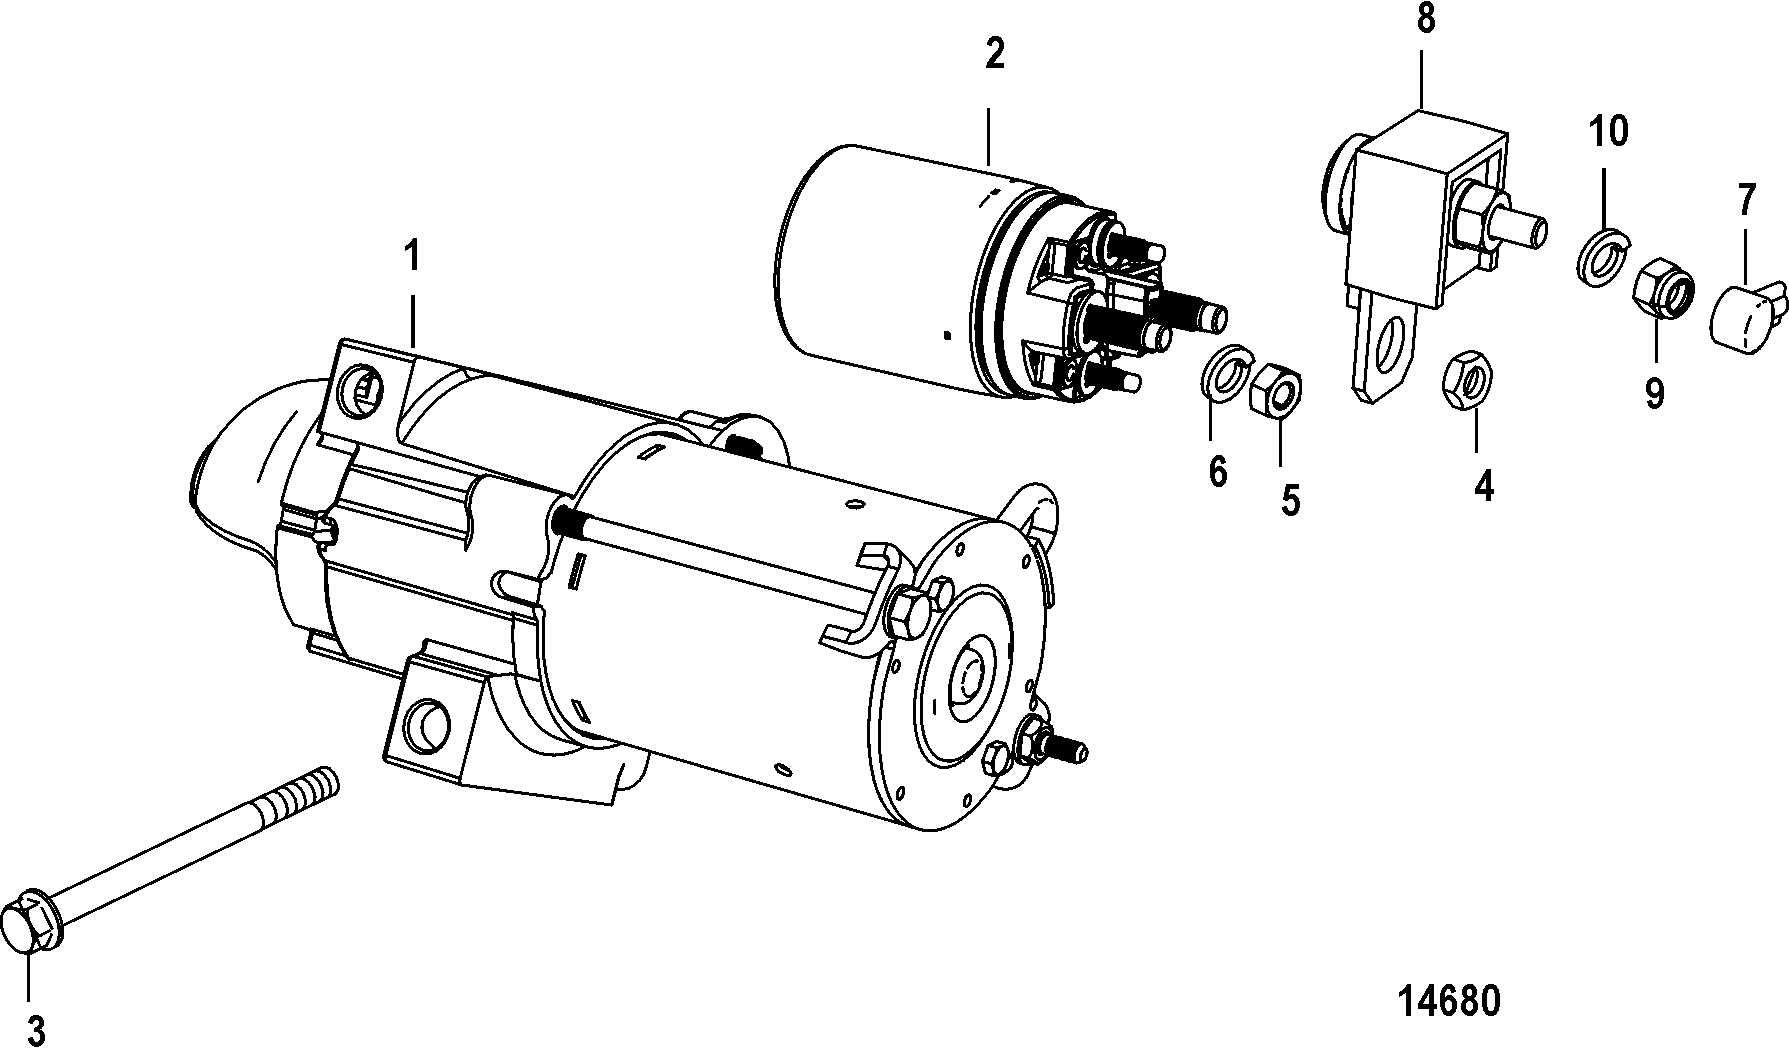 14680  Cadillac Deville Ignition Wiring Diagram on 4 door red, battery size, dts interior, center caps, sedan 4wd, custom paint, plus interior, pearl white,